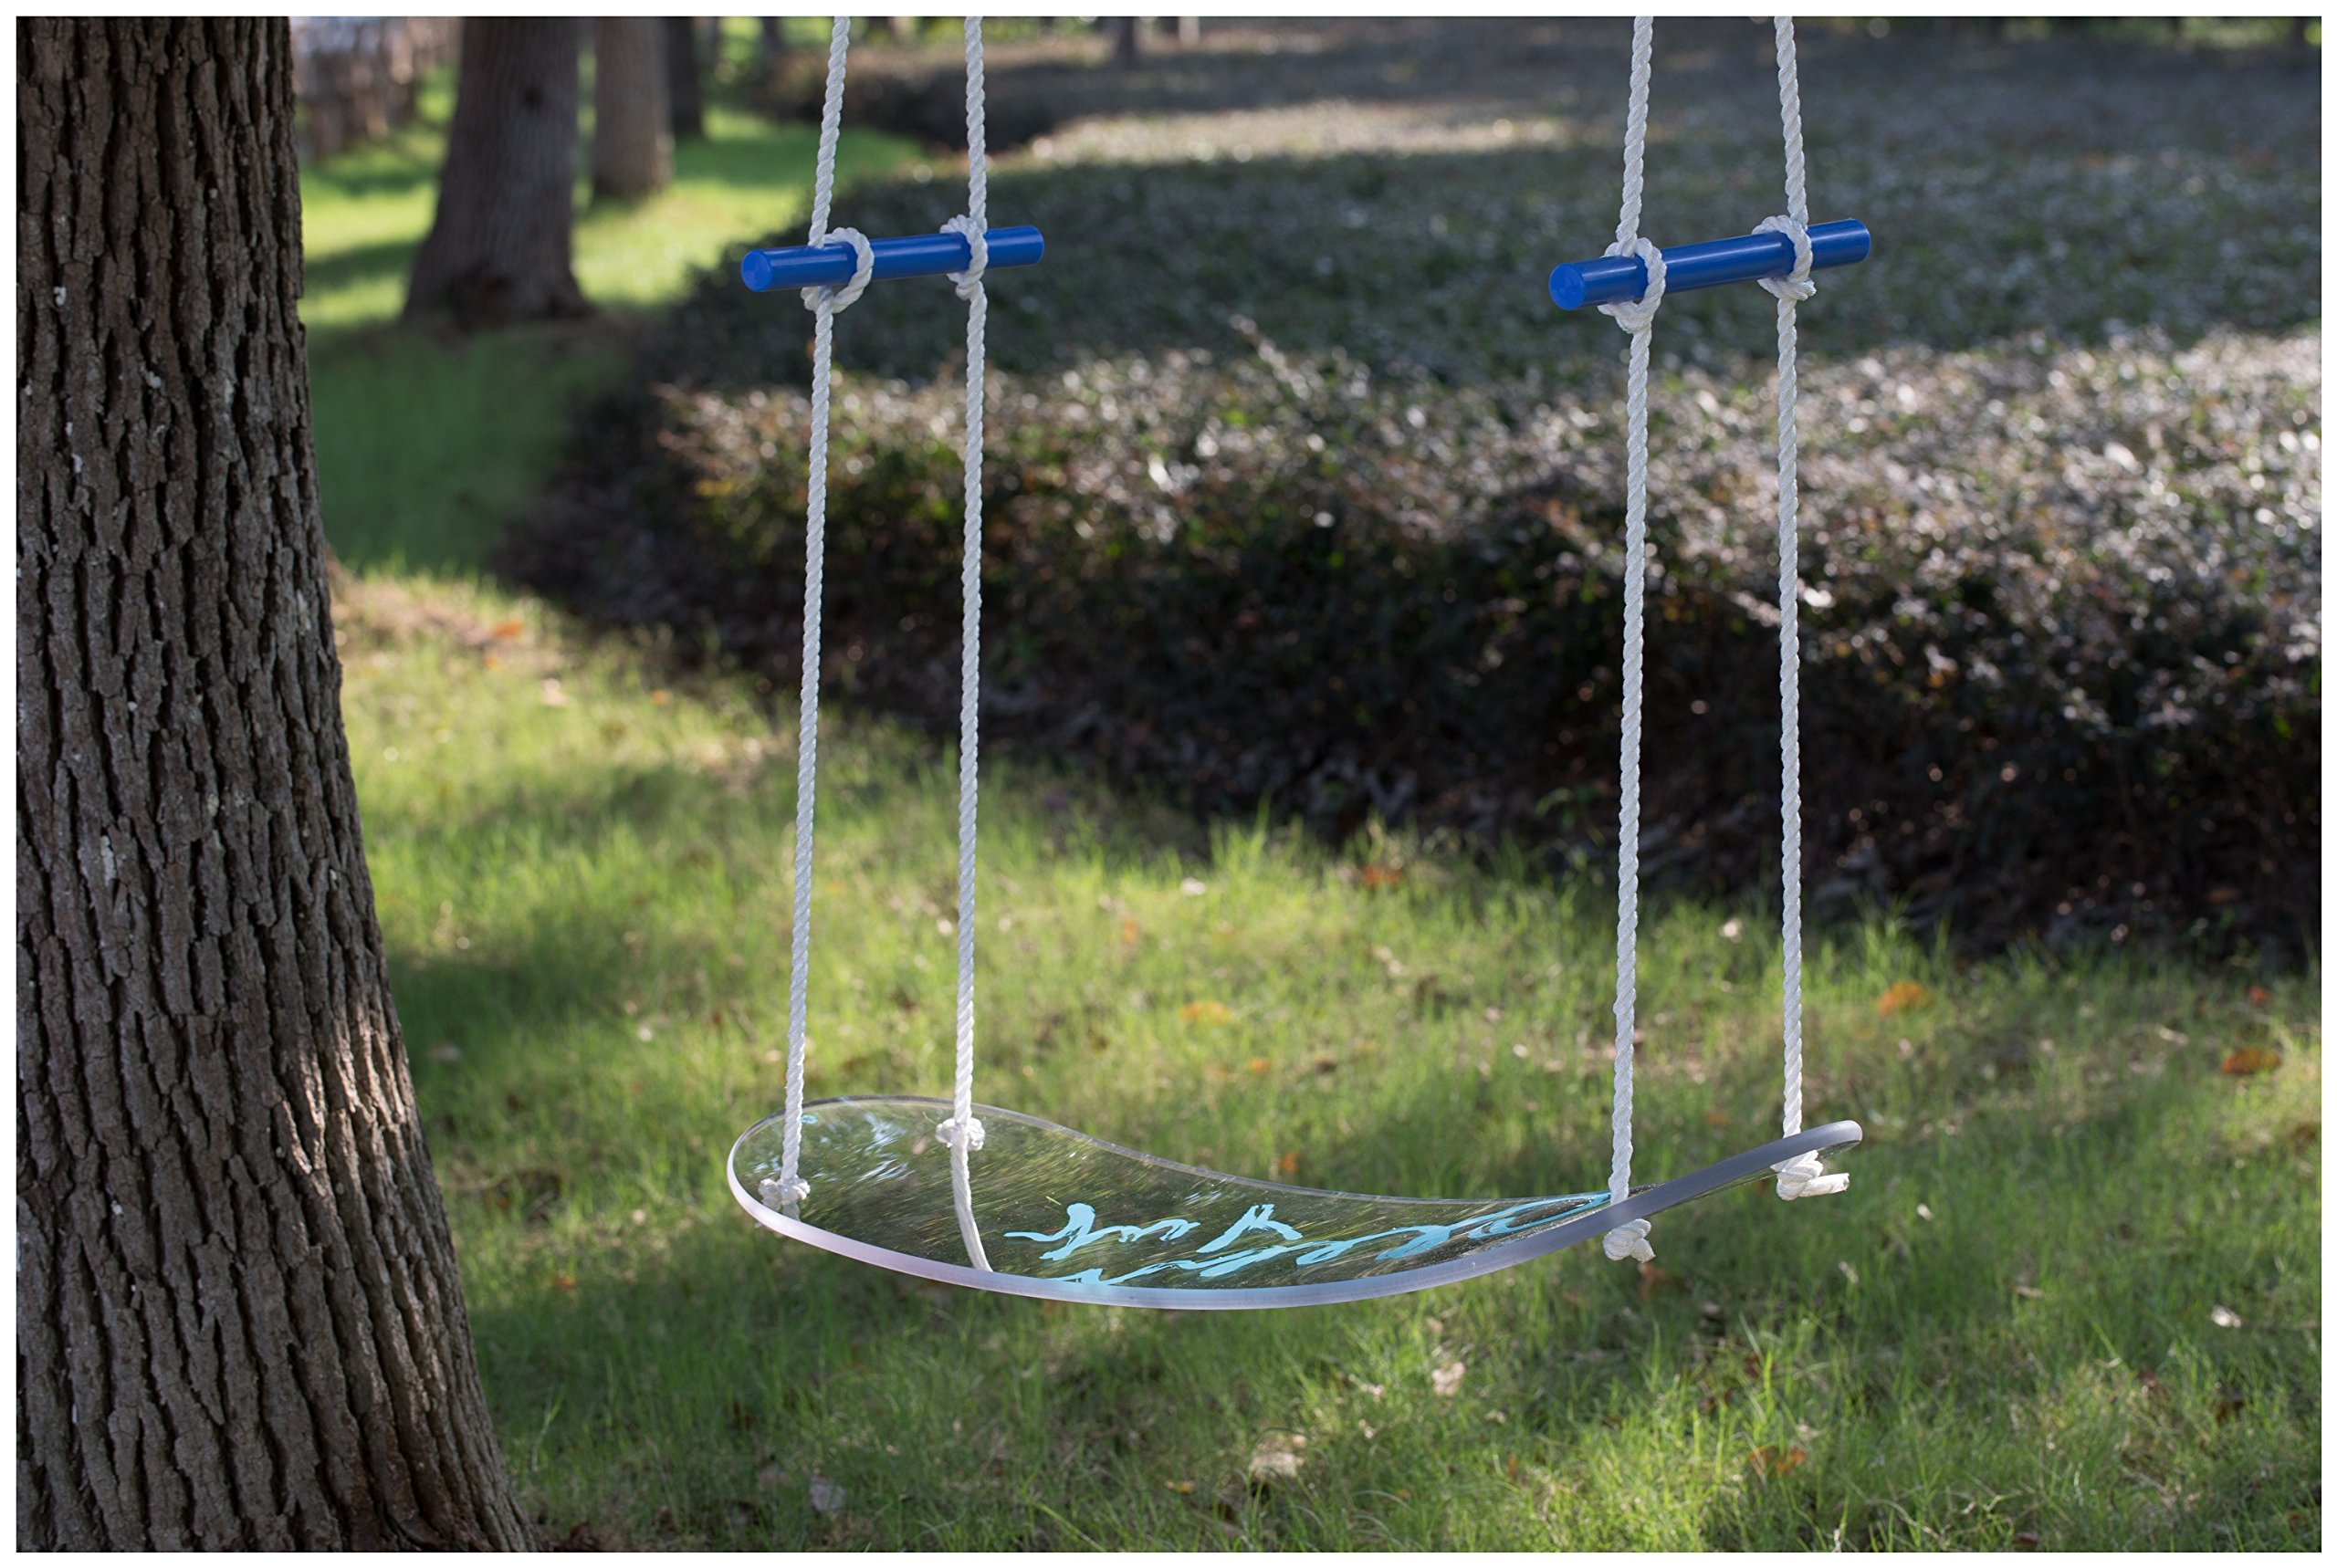 ClearYup Skateboard Swing Tree Swing Hanging Kit Stand Up Hanging Swing Polycarbonate Board Water Resistance Unbreakable Outdoor Toys For Hanging For Teens For Boys Outdoor Ride On Toys For Toddlers Y by ClearYup